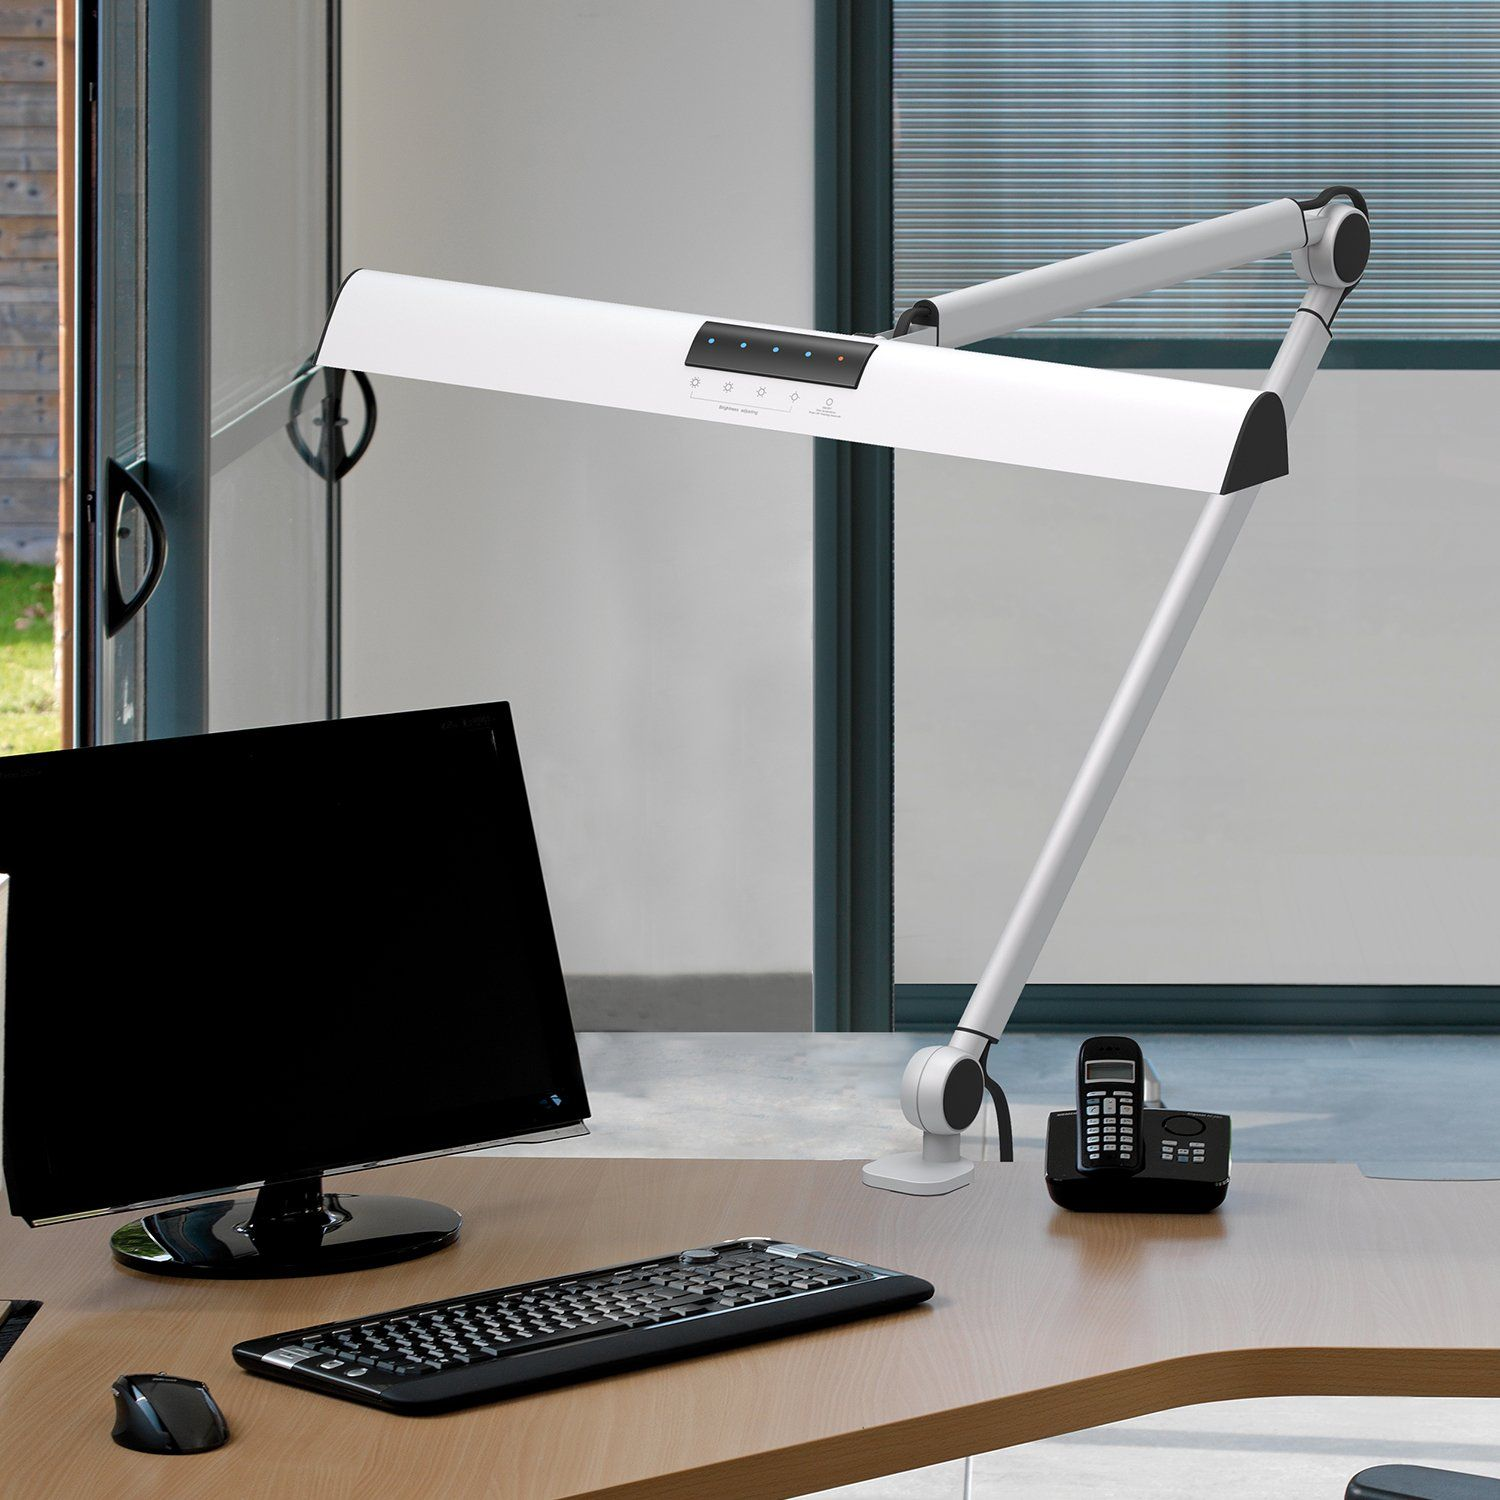 Youkoyi A509 Led Swing Arm Architect Desk Lamp Clamp Drafting Table Lamp For Reading Working 2 Lighting Modes 4level Dimmable Ey Architects Desk Desk Lamp Desk